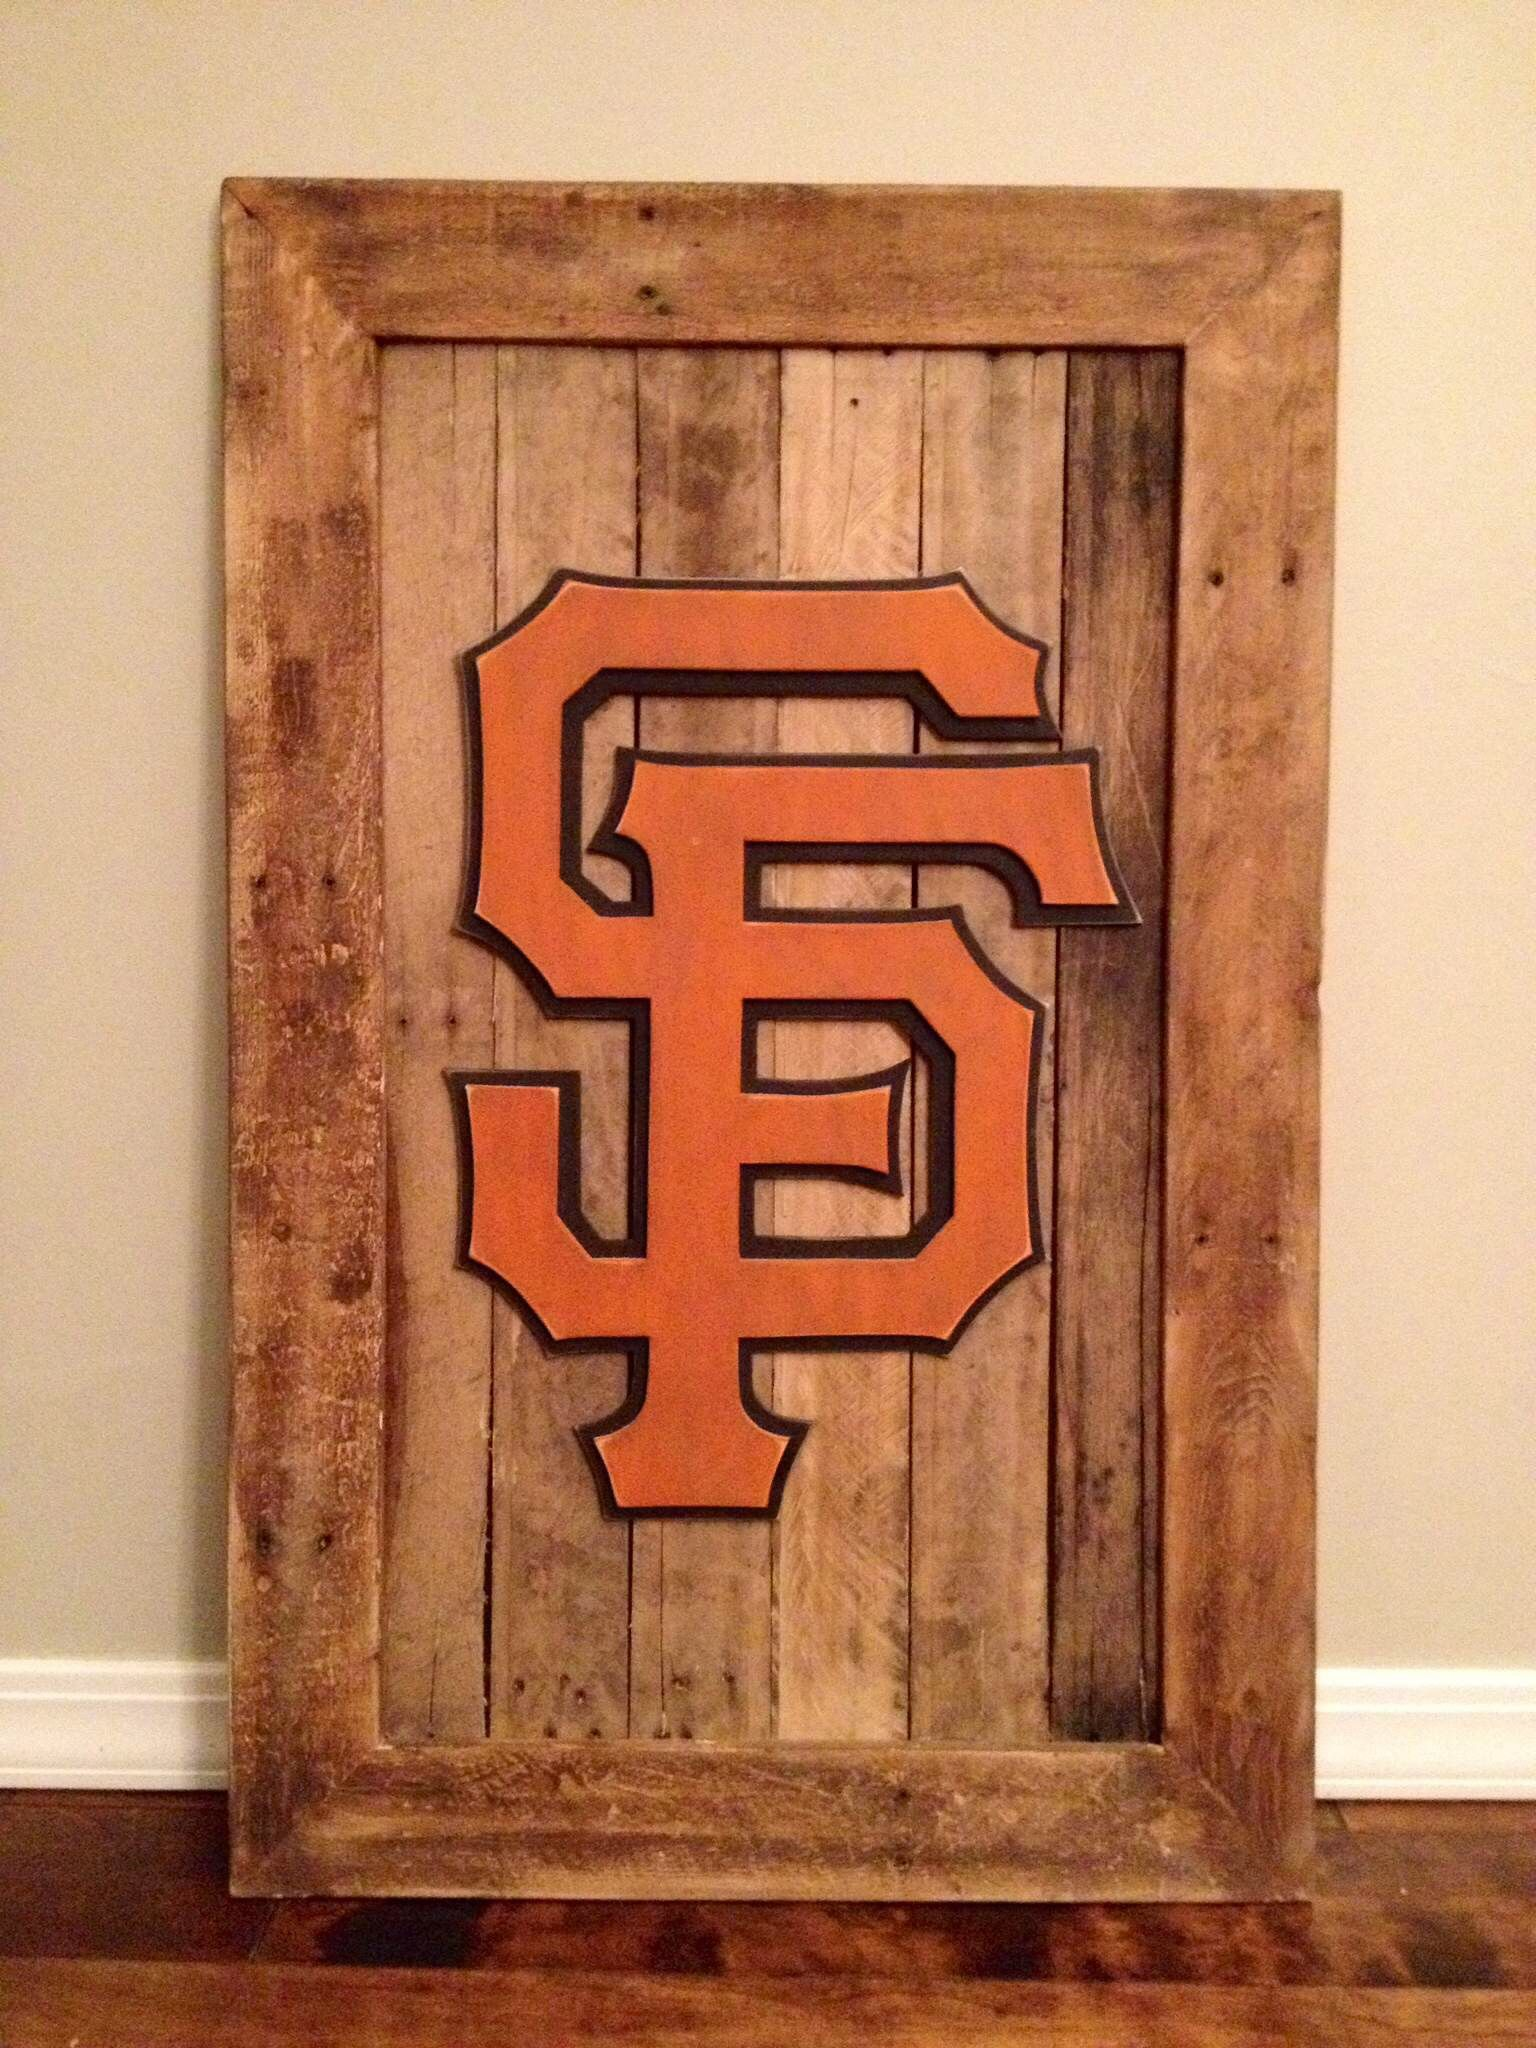 San francisco giants 3 d wood sign 3 d sports sign giants wall decor san francisco giants 3 d wood sign 3 d sports sign giants wall amipublicfo Images